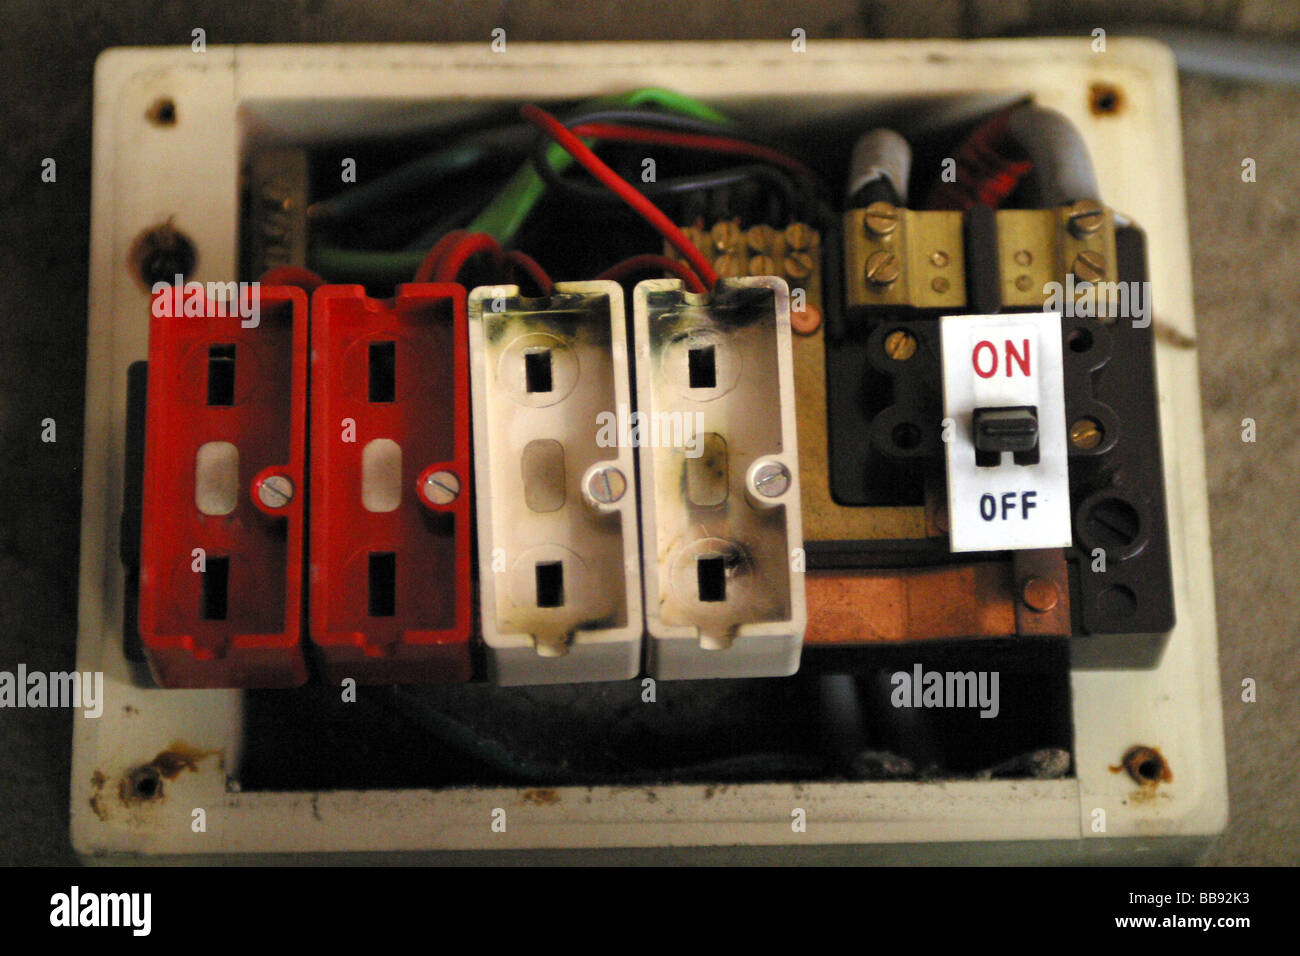 old style wire fuse box with no fuses installed BB92K3 old fuses fuse box stock photos & old fuses fuse box stock images